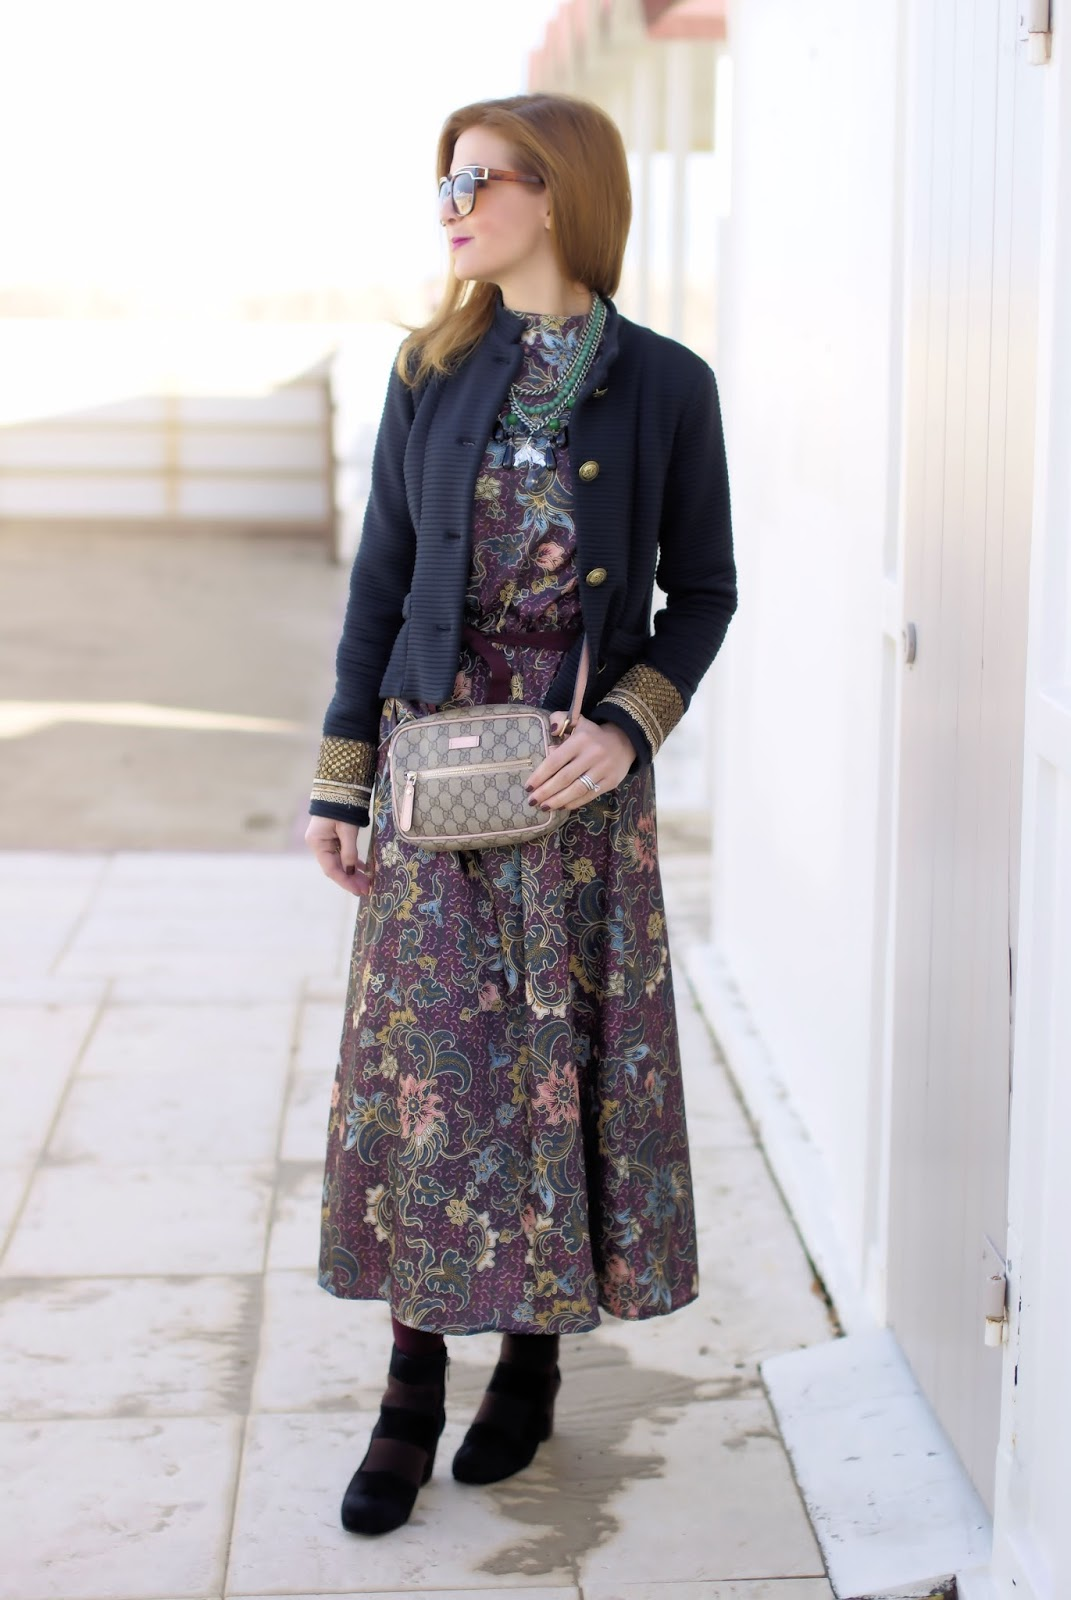 How to wear a floral jaquard maxi dress in winter on Fashion and Cookies fashion blog, fashion blogger style